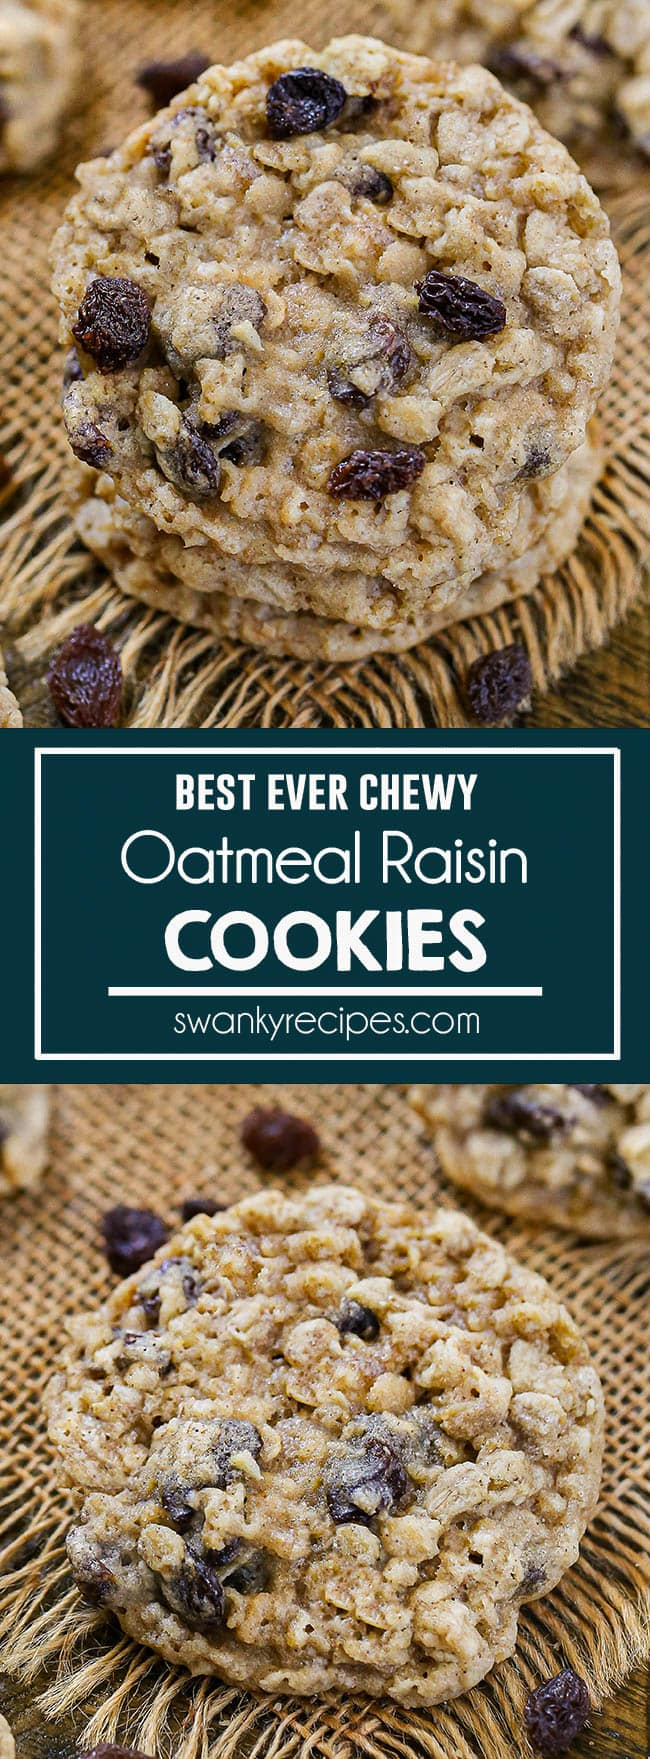 Best Chewy Oatmeal Raisin Cookies stacked on burlap with raisins. text in center reads best ever chewy oatmeal raisin cookies. Second image features a single cookie on burlap with raisins.